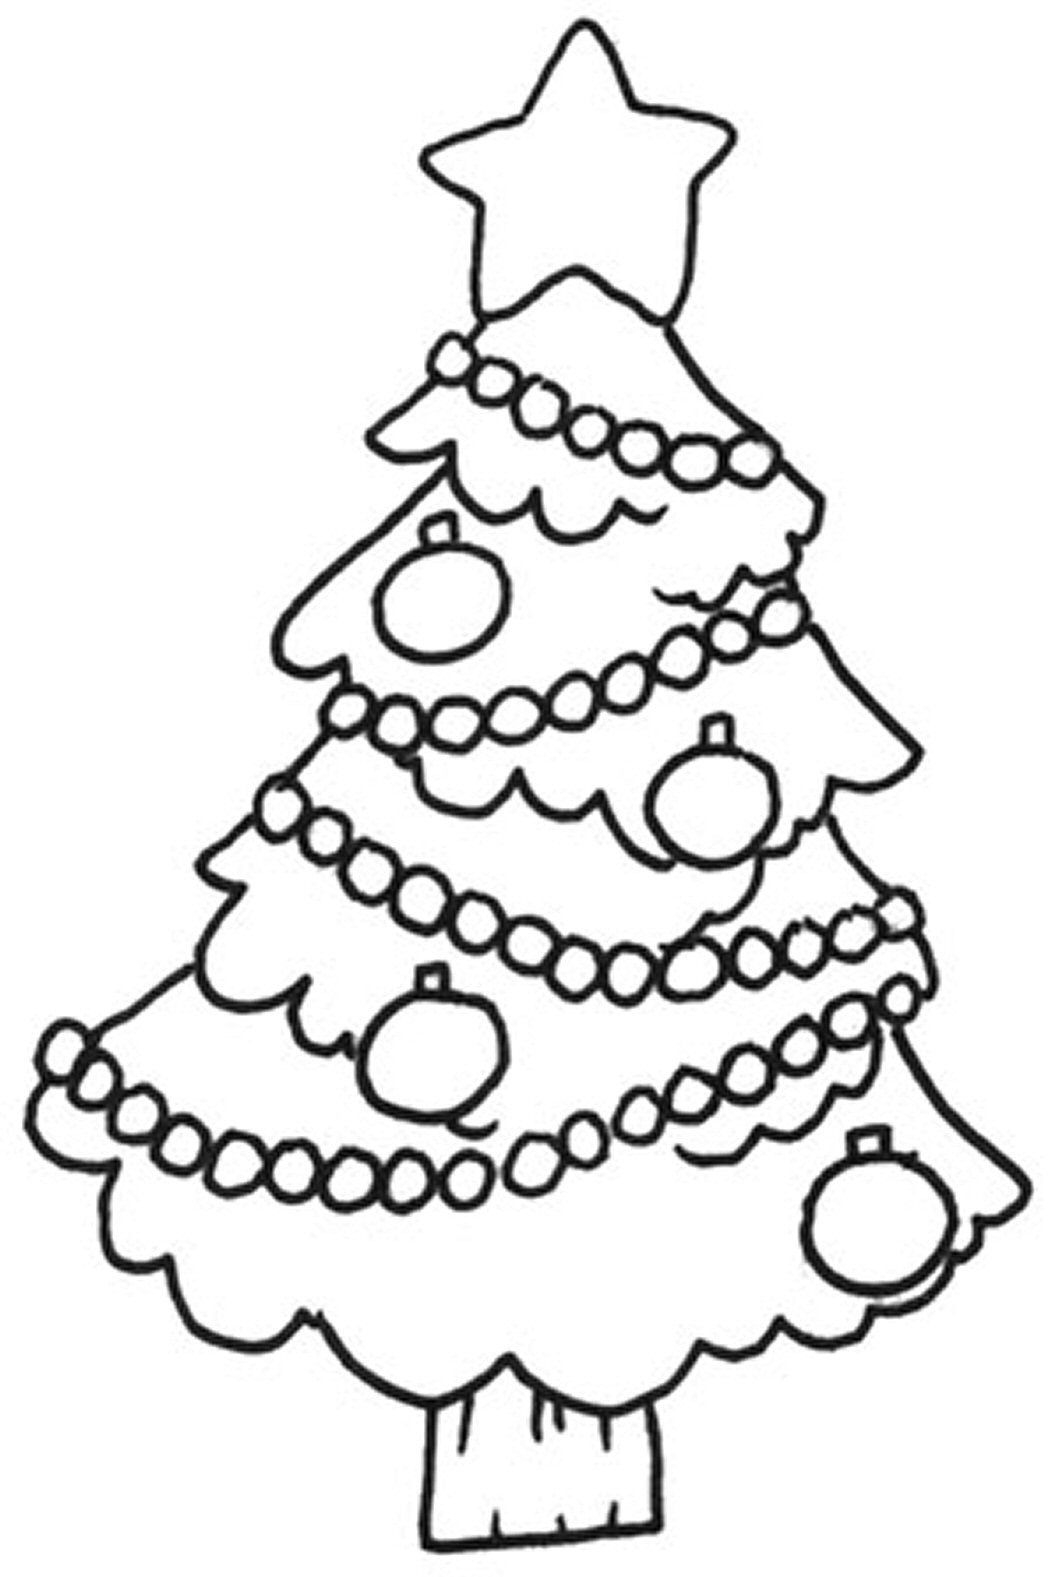 Christmas Tree Coloring Page With Pages For Kids Creative Images Collect